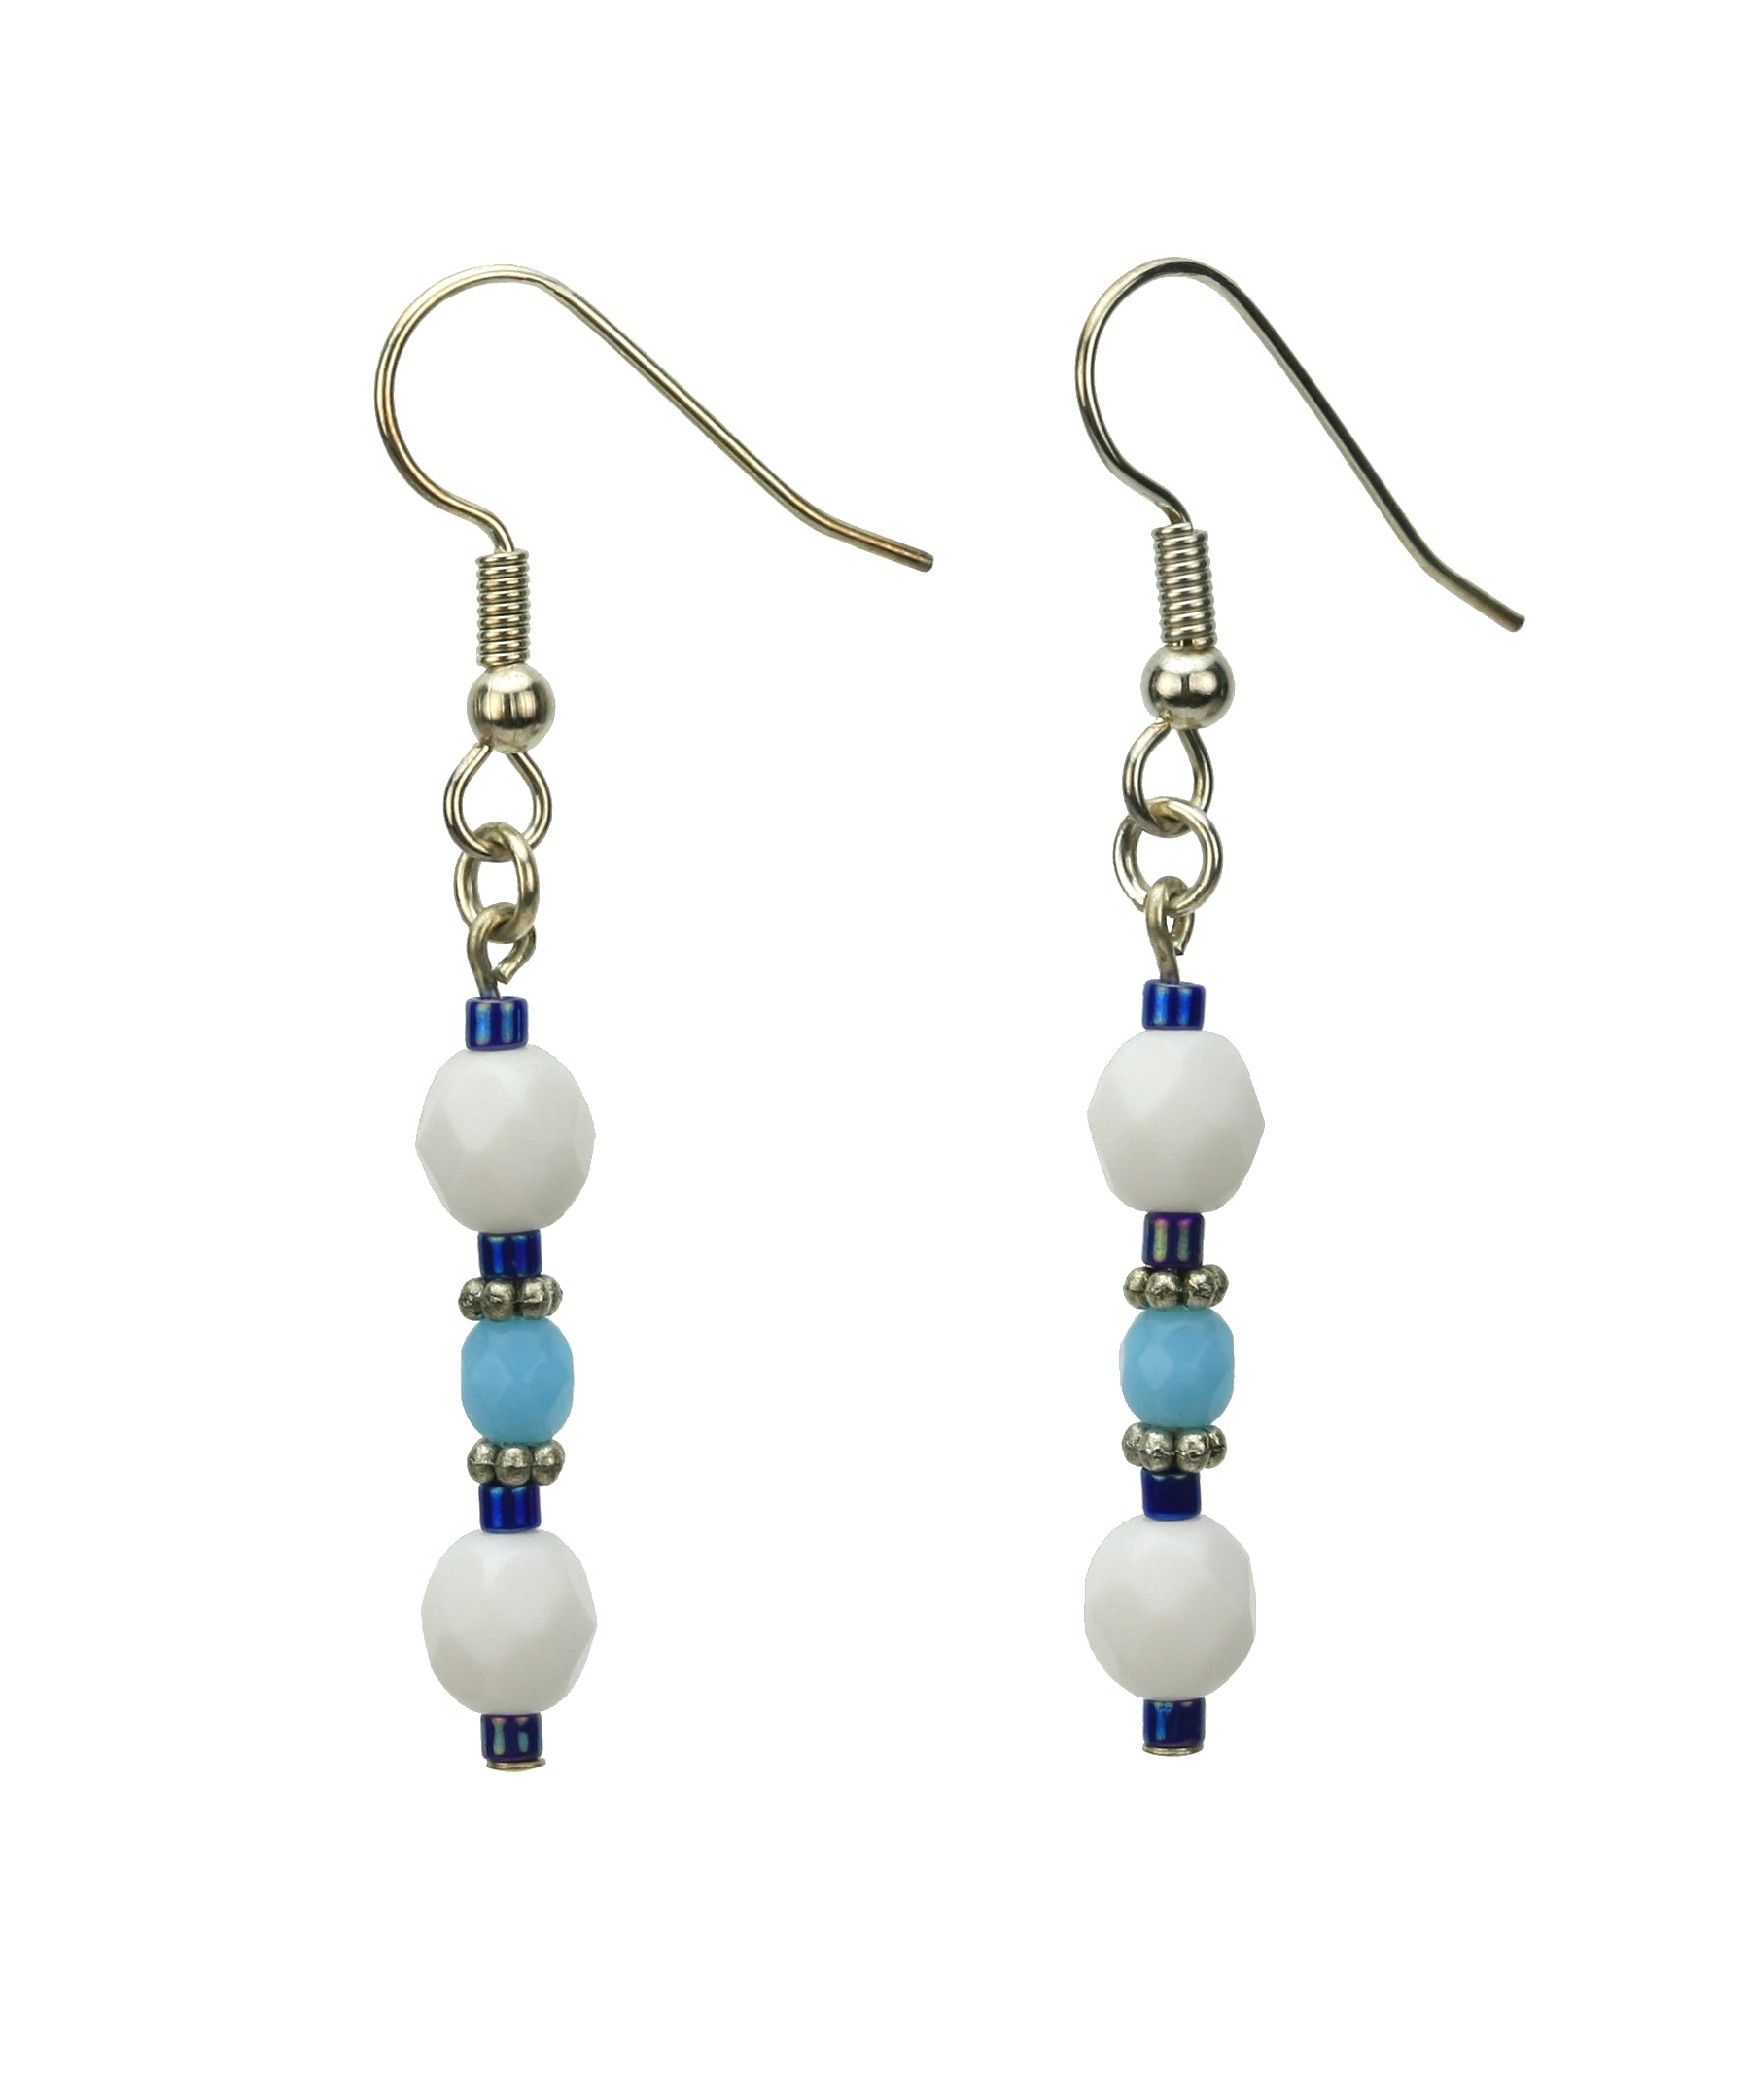 Opaque White and Turquoise Blue Silver Earrings